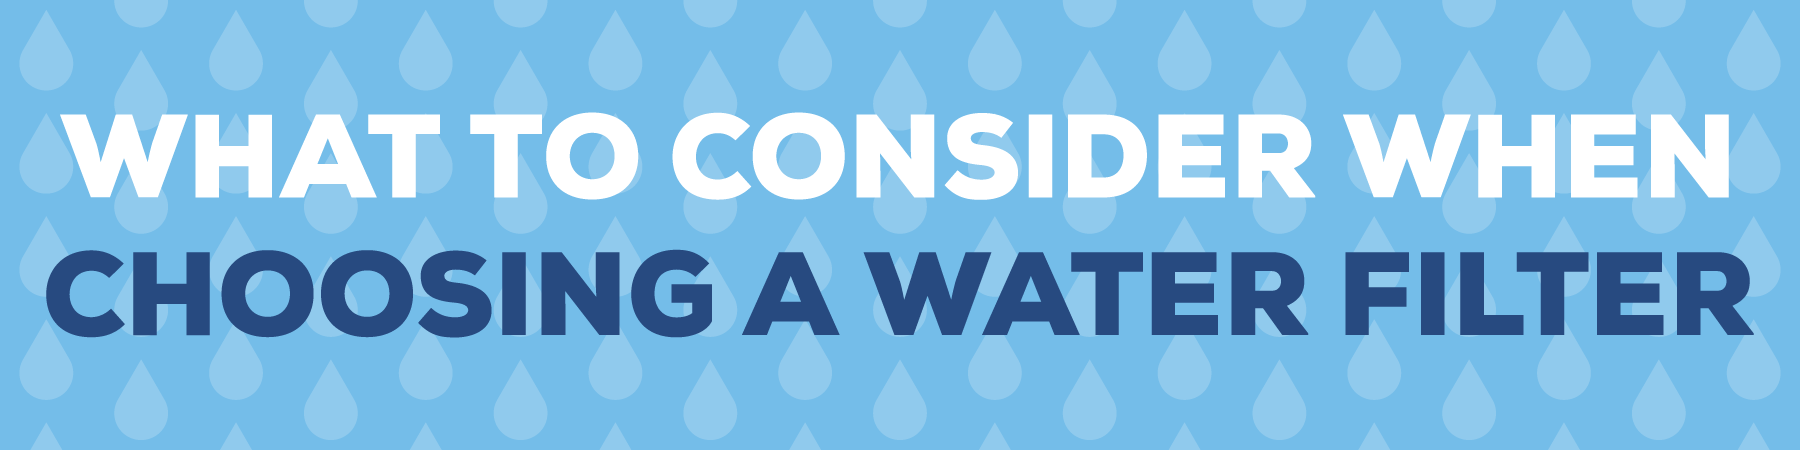 What-to-consider-when-choosing-a-water-filter